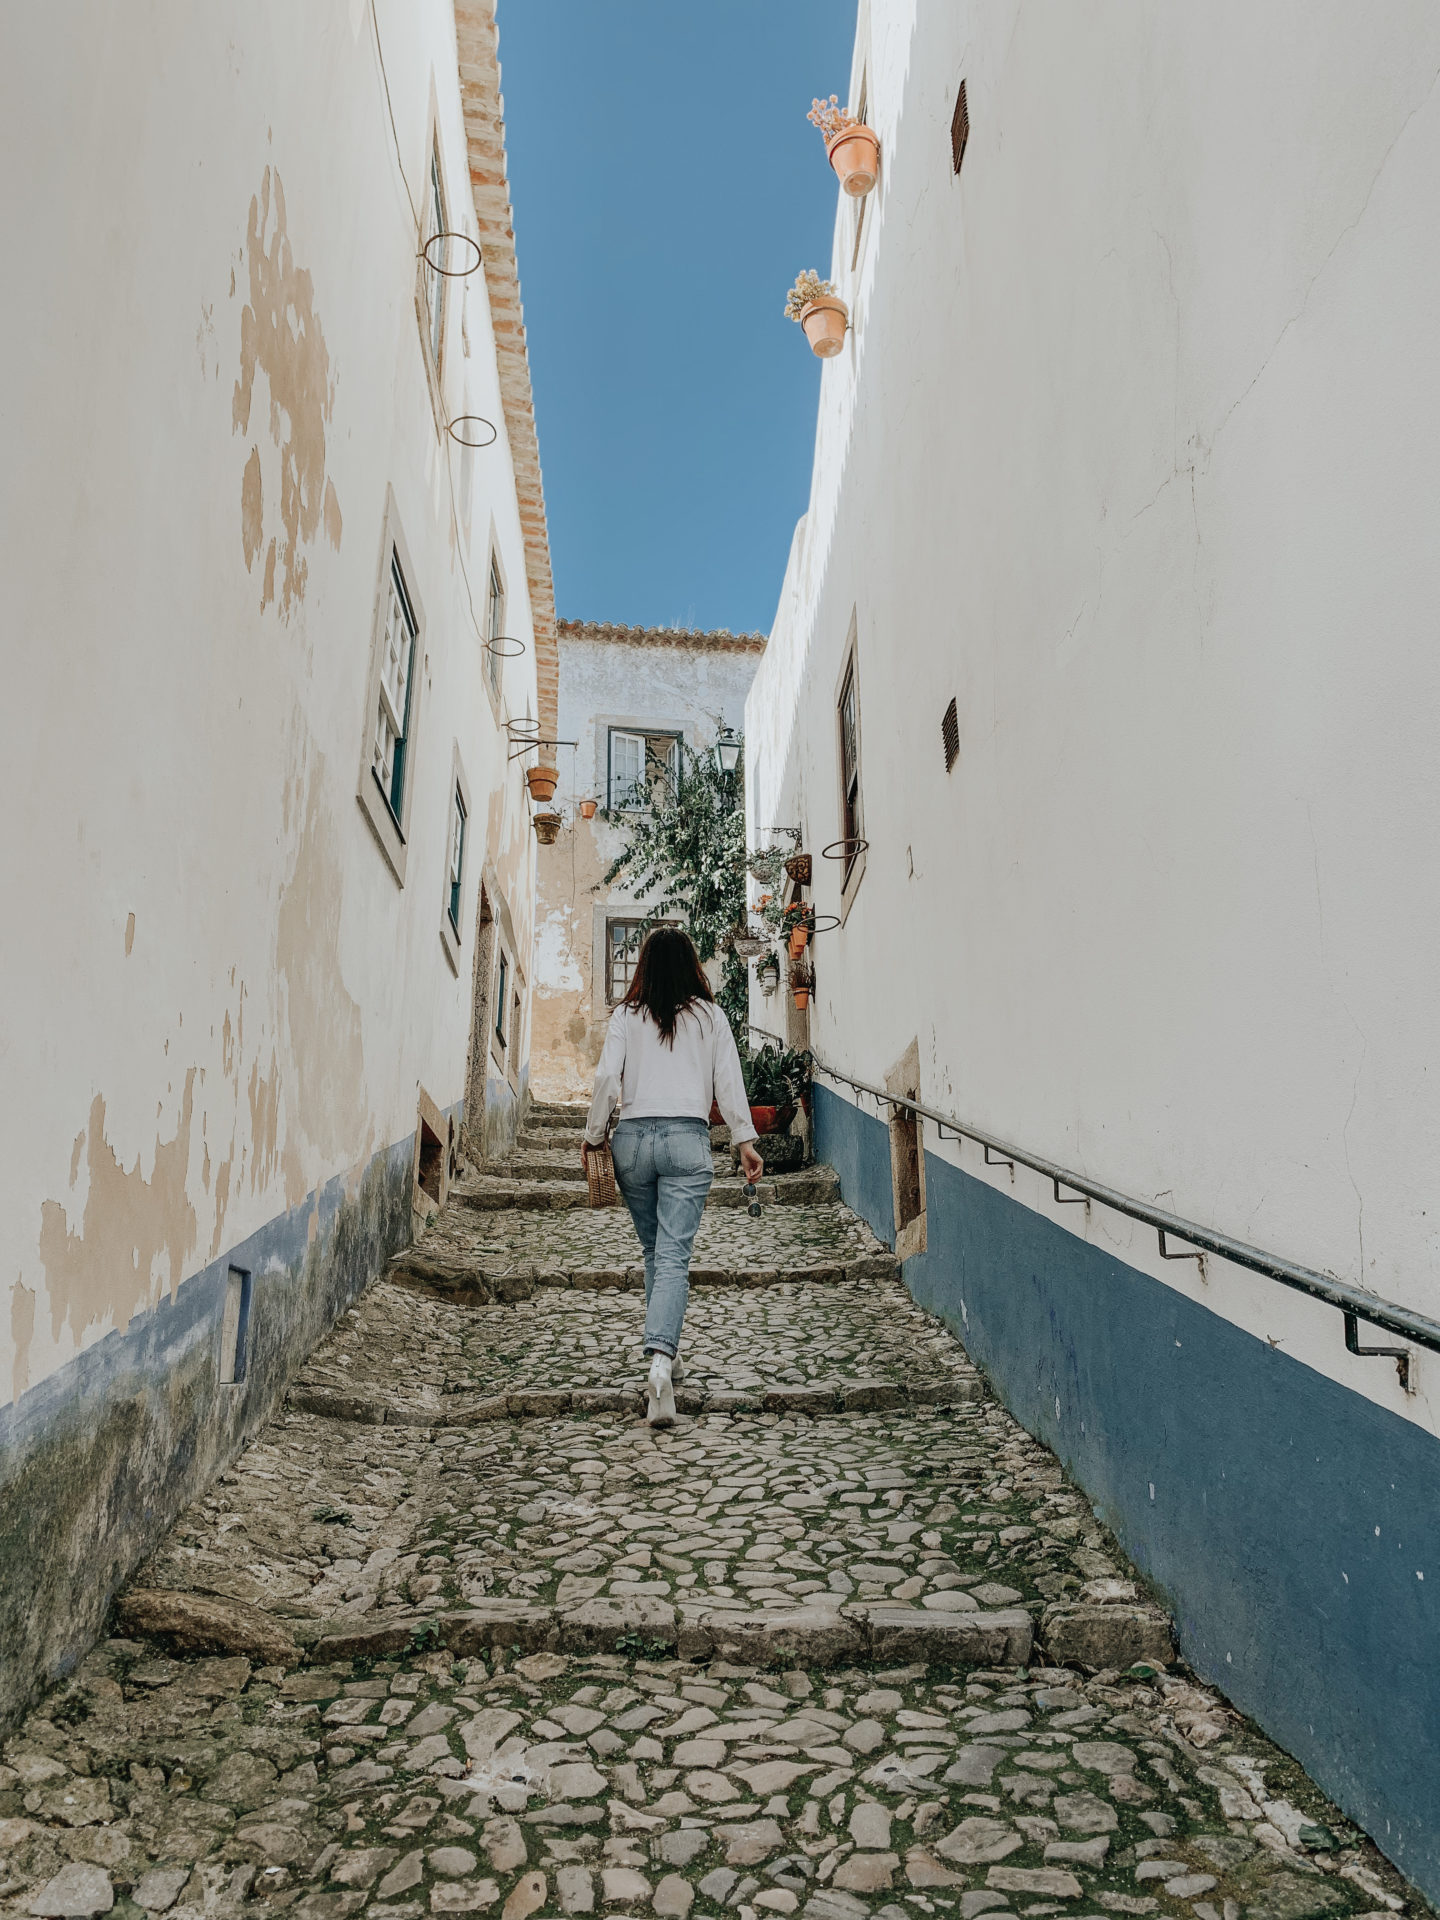 A Day In Óbidos Portugal - Cobble Stone Streets - thecasualfree.com